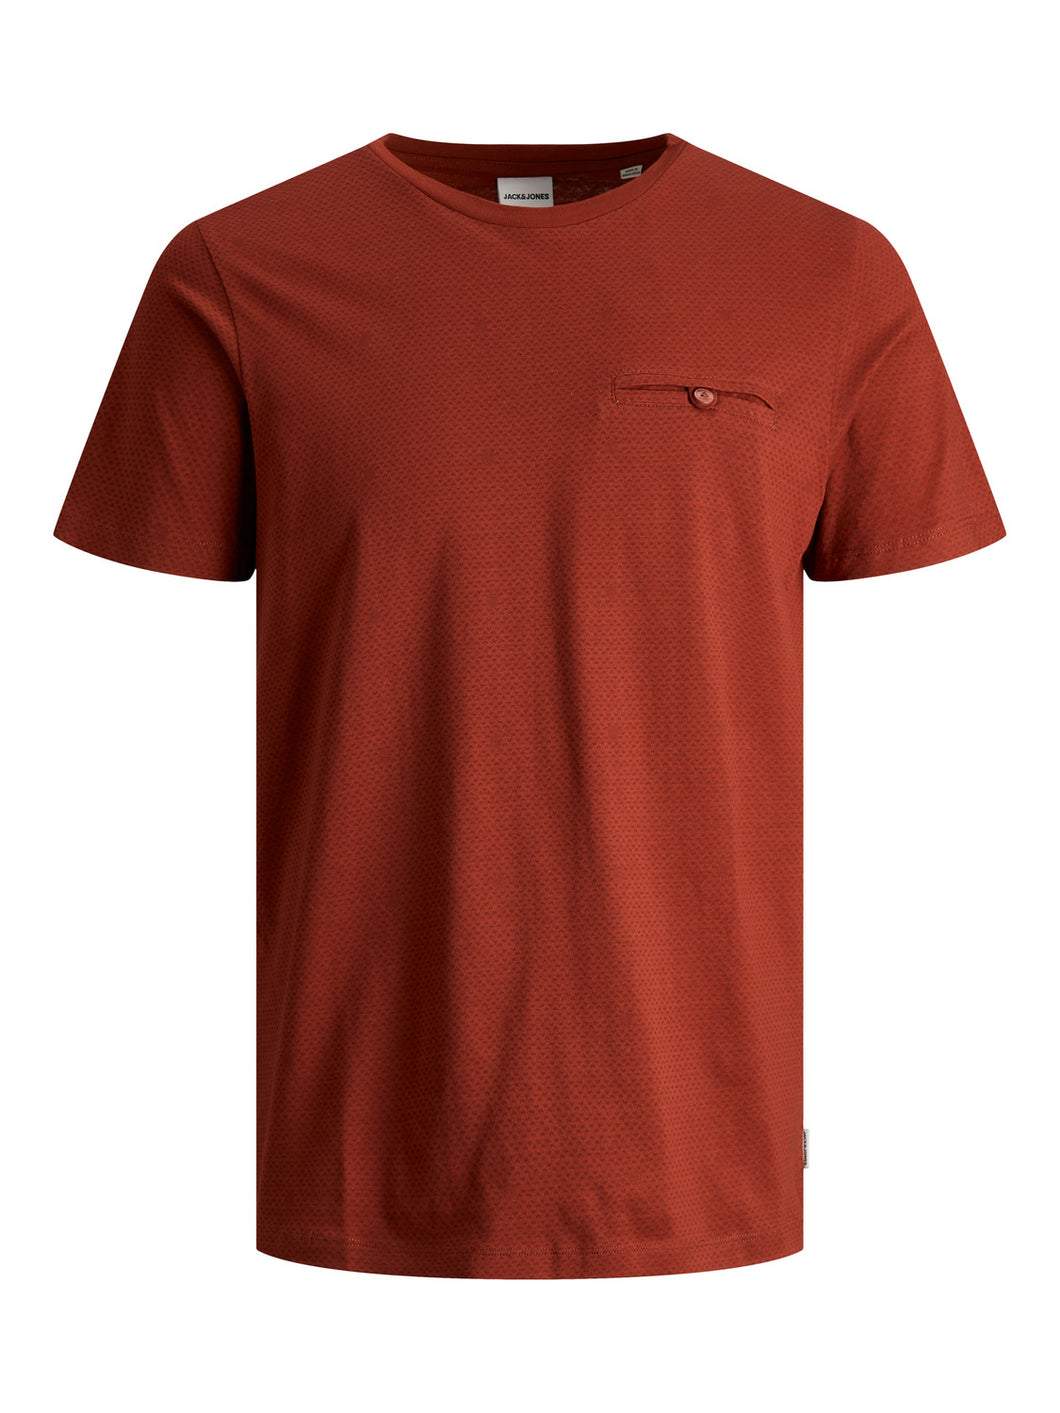 JCOBARBAR T-shirt - red ochre